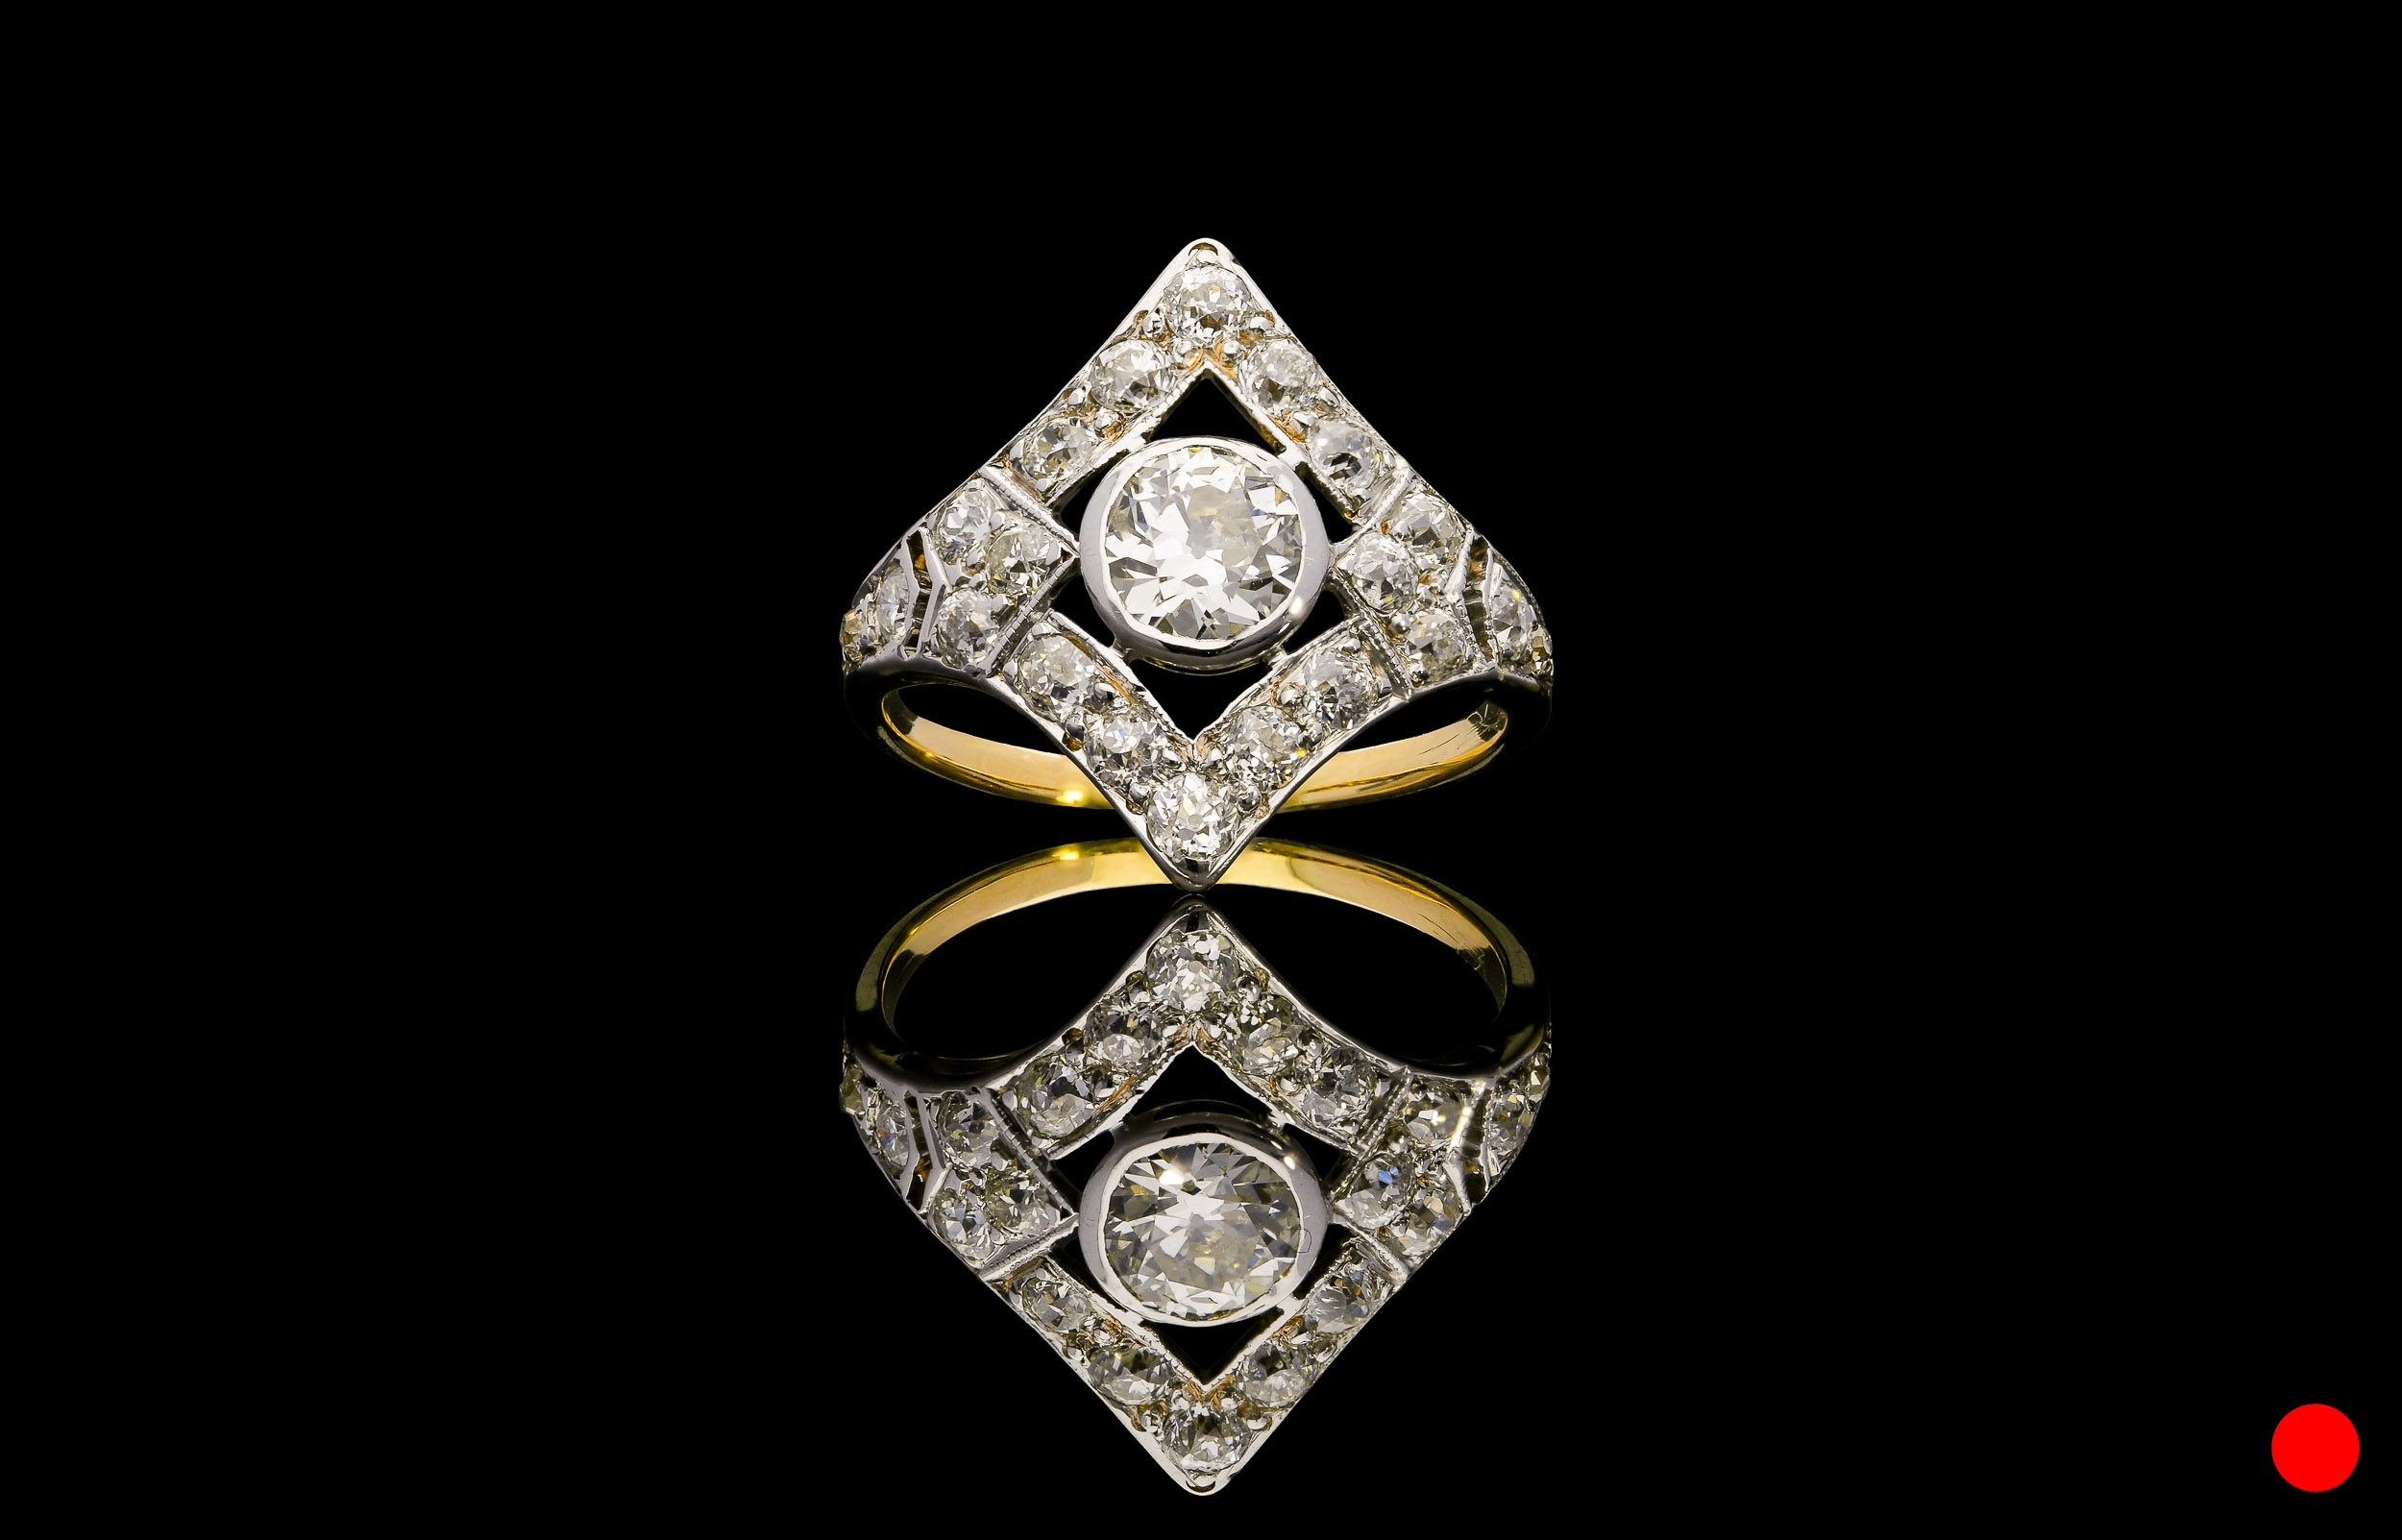 An Edwardian Old European shield ring | £5950